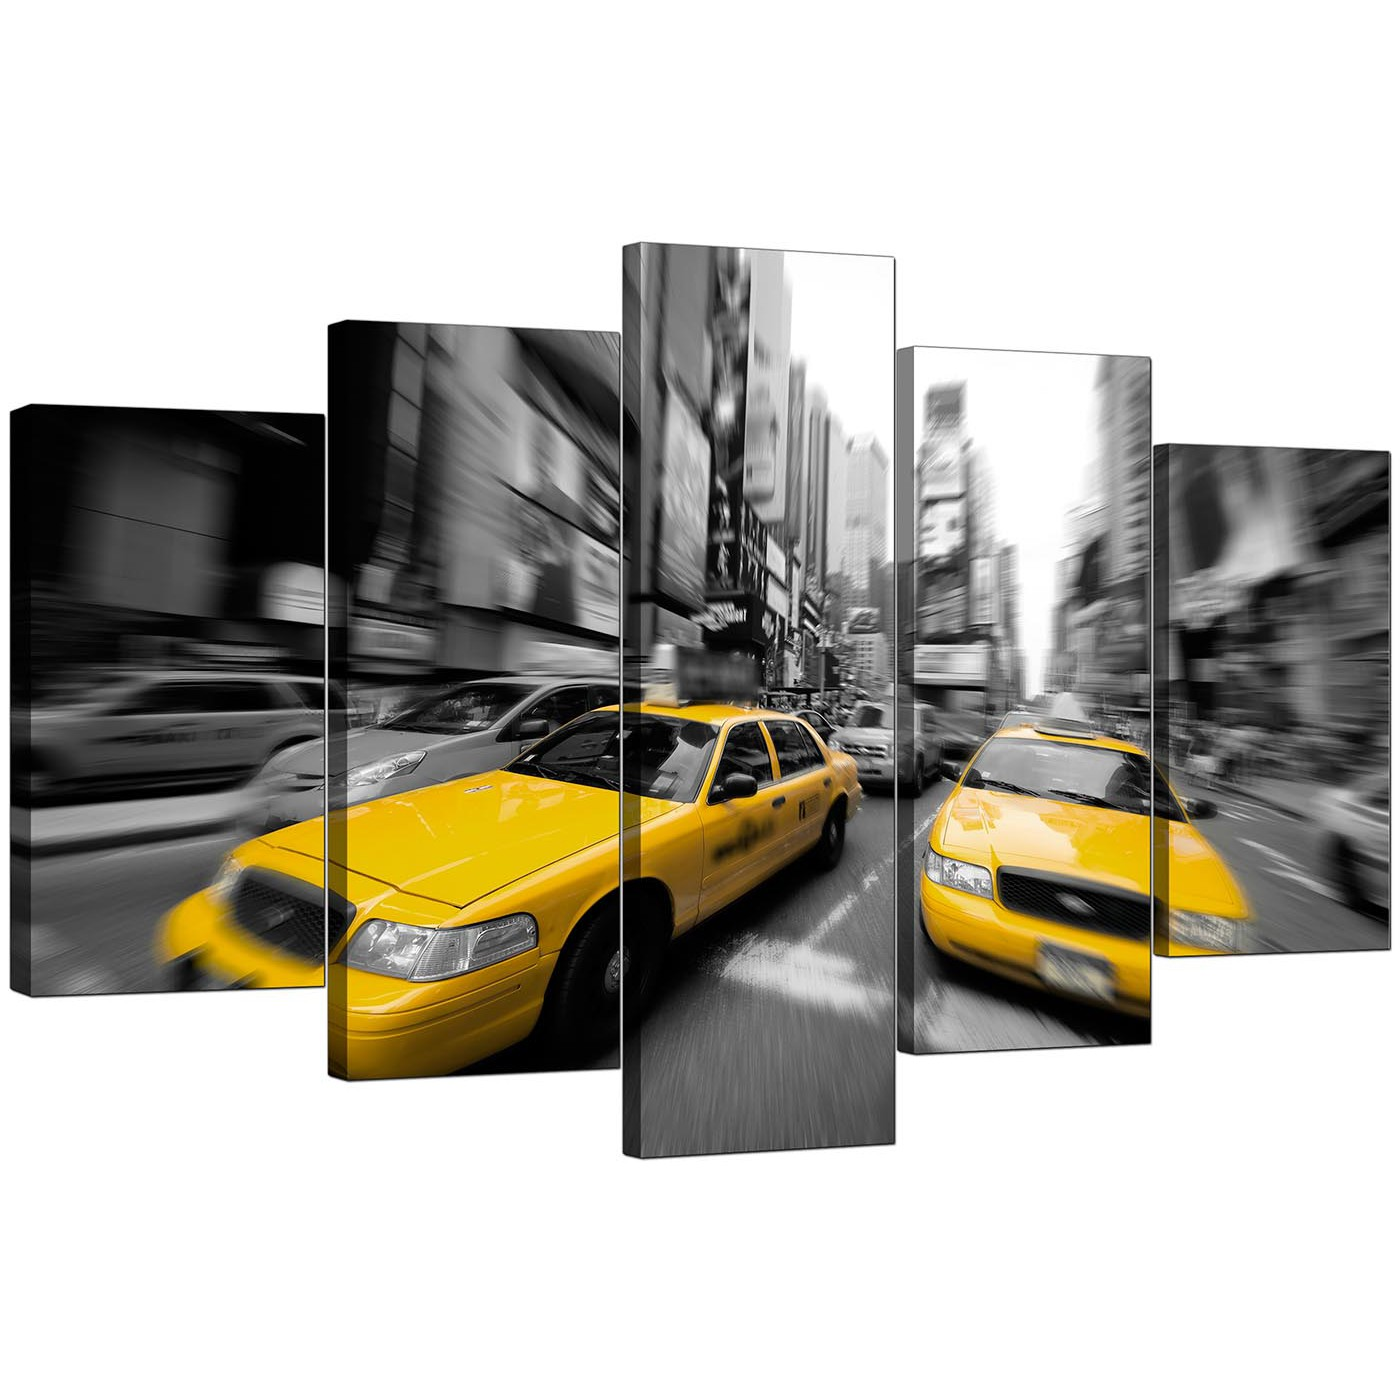 cheap 3 piece living room set small and kitchen ideas large yellow new york taxi canvas prints of 5 in black ...